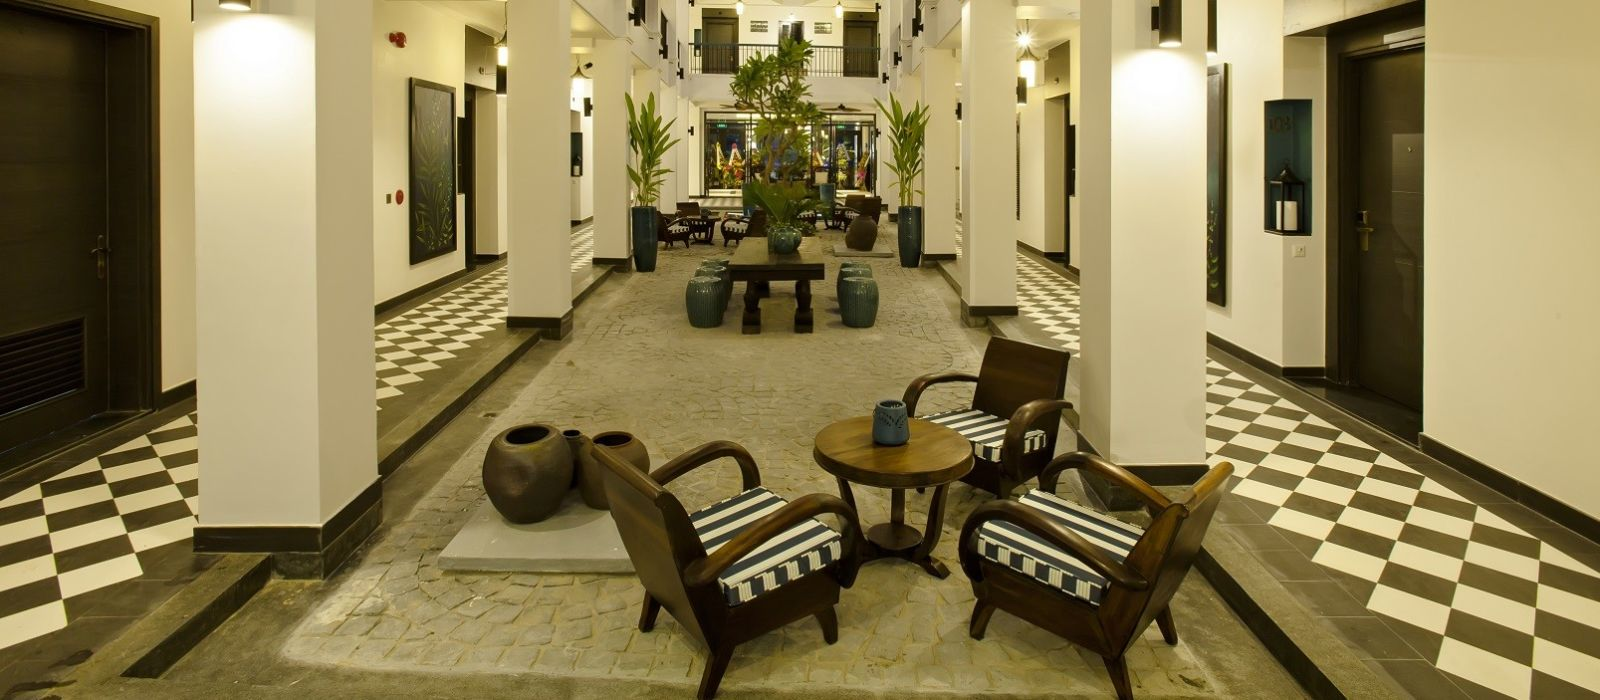 Maison vy hoi an hotel in vietnam enchanting travels for Hotel maison